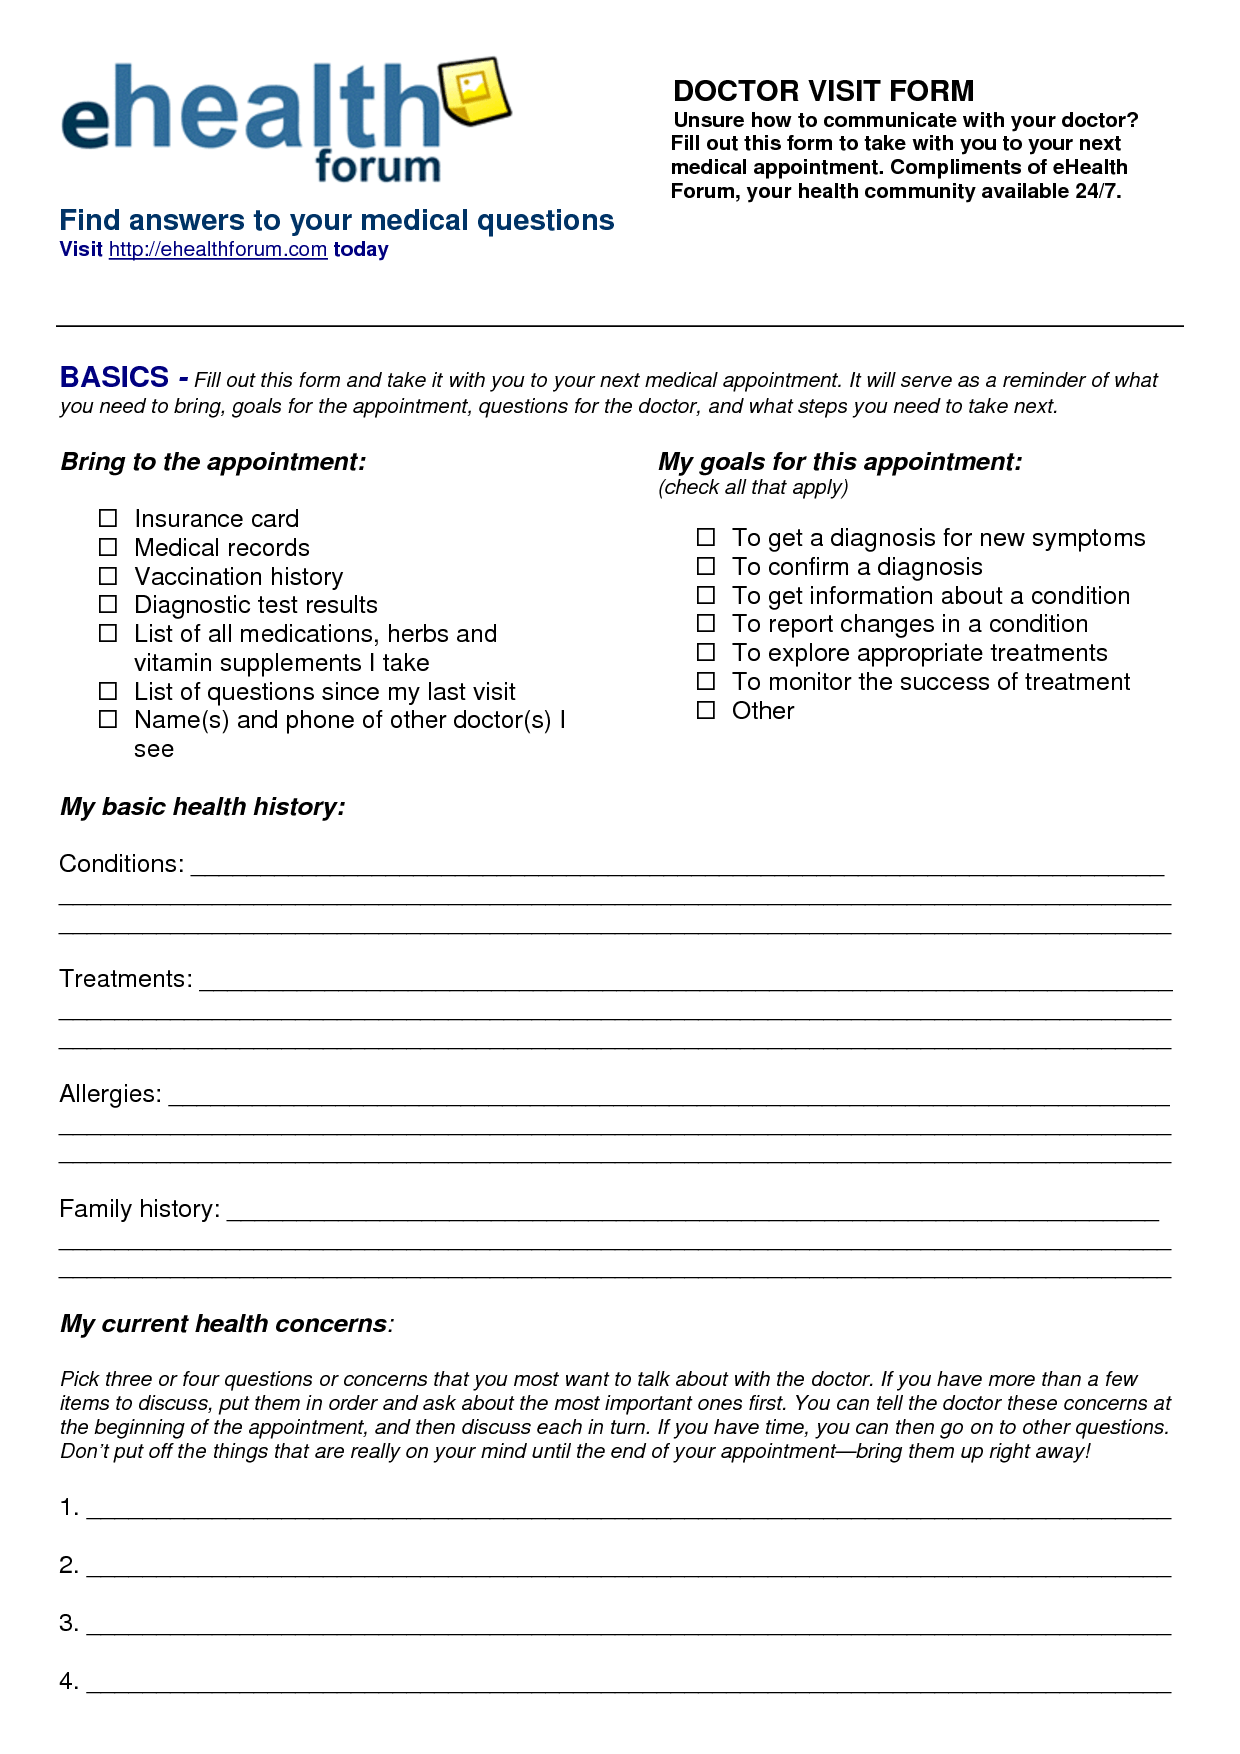 Hipaa Privacy Authorization Form Pdf